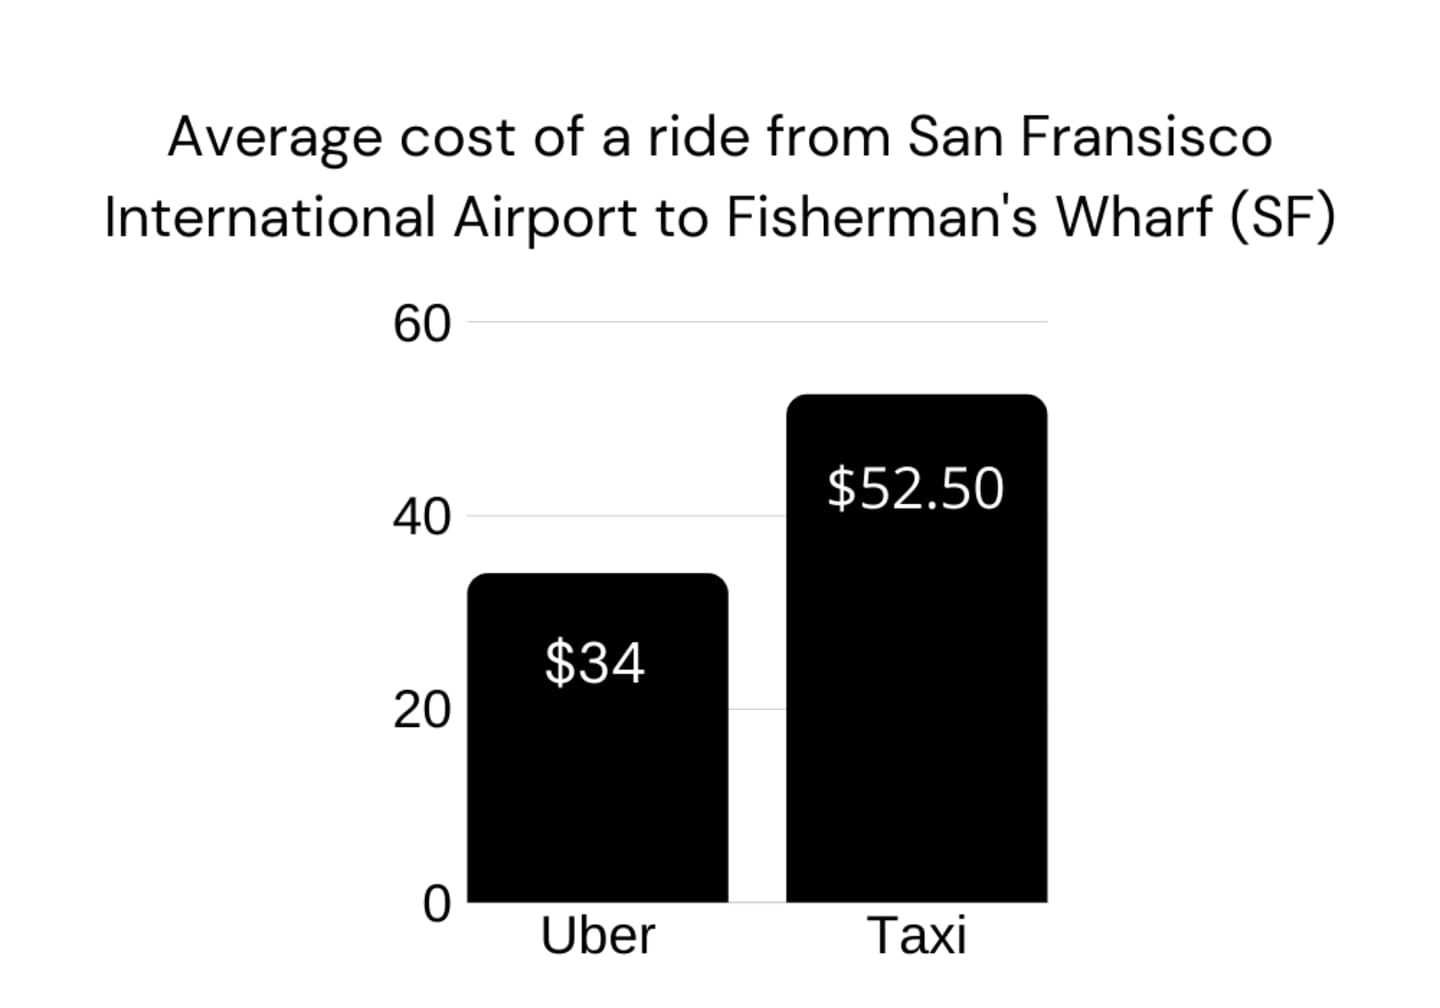 A bar chart compares the average cost of a common journey within San Fransisco by Uber and by taxi. Uber costs an average of $34 while a standard taxi costs an average of $52.50.